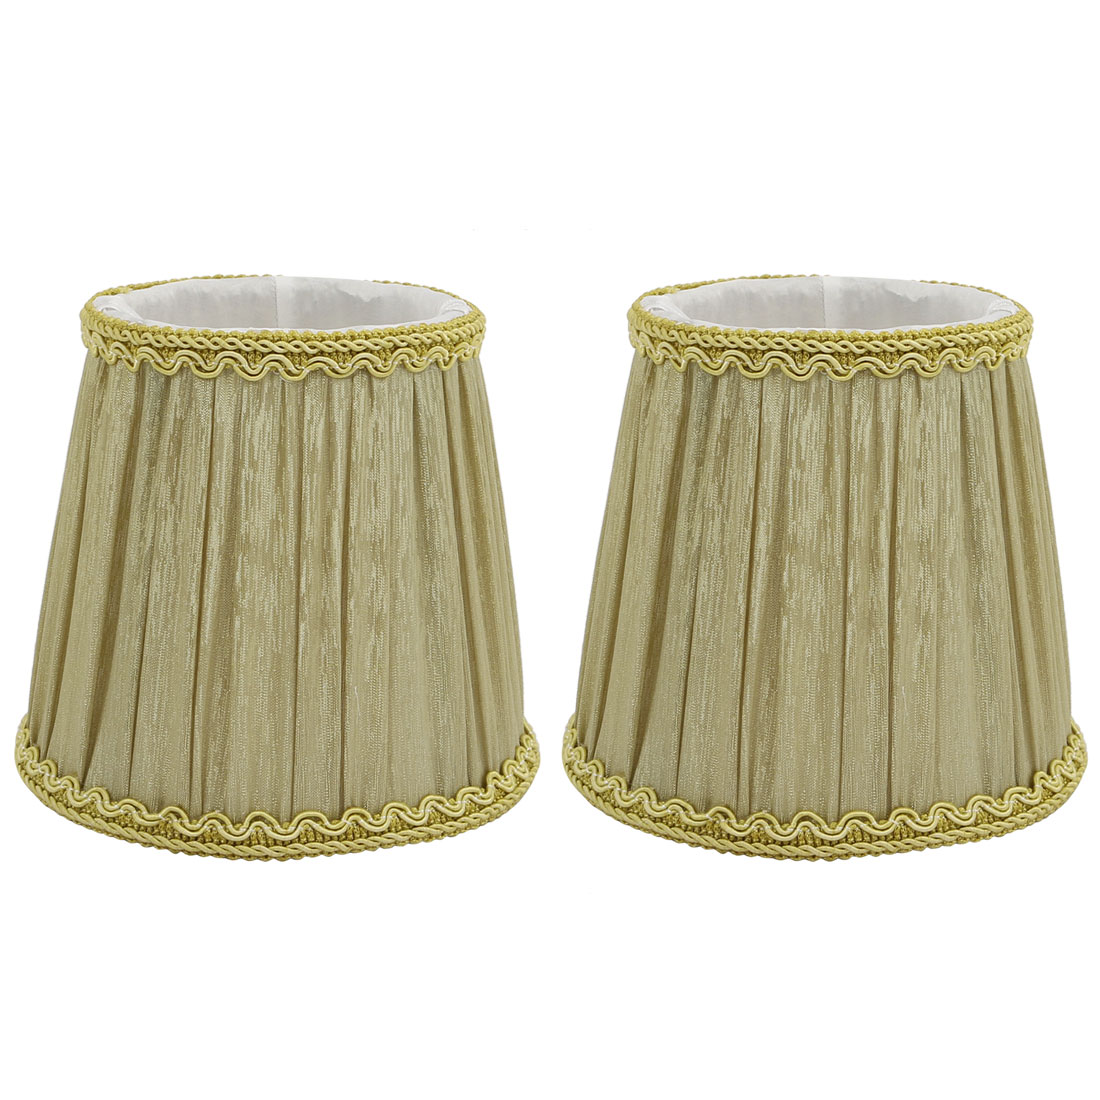 2pcs DropLight Shade Chandelier Clip-On Lampshade Yellow Green Fabric-Covered by